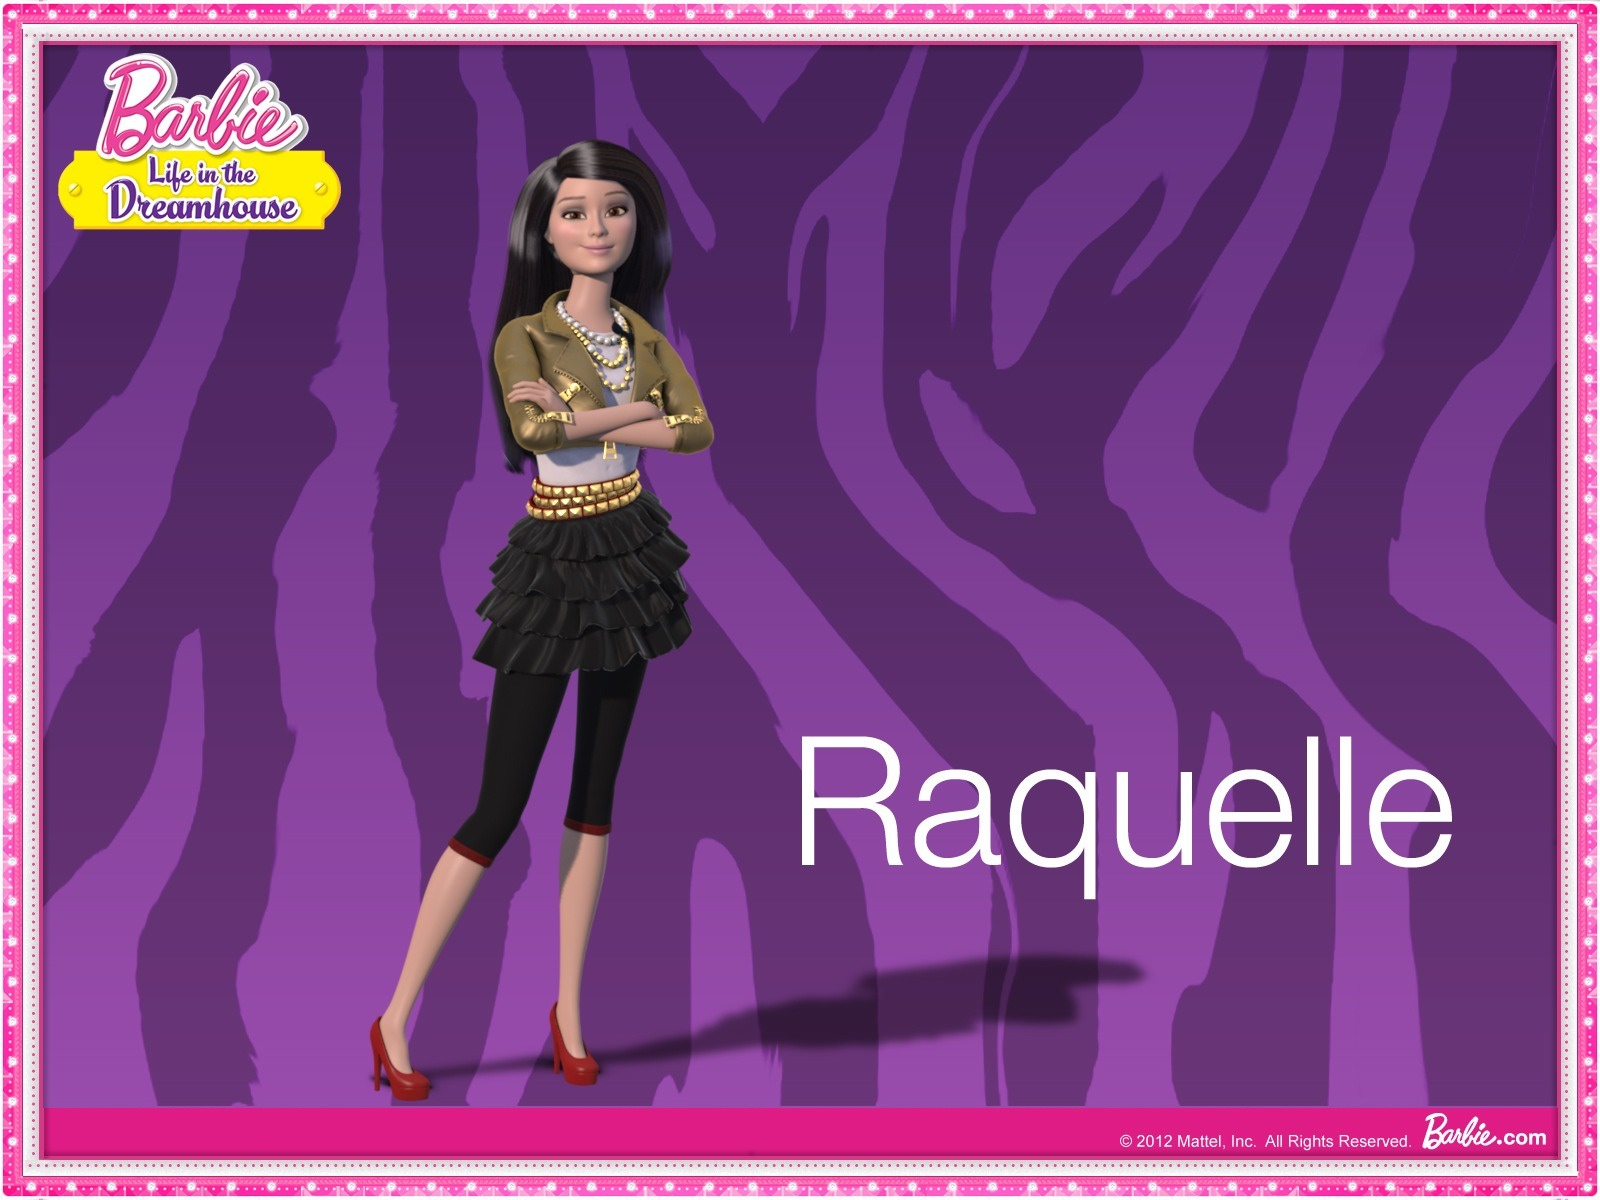 http://images5.fanpop.com/image/photos/30800000/Barbie-Life-in-the-Dramhouse-barbie-movies-30845159-1600-1200.jpg